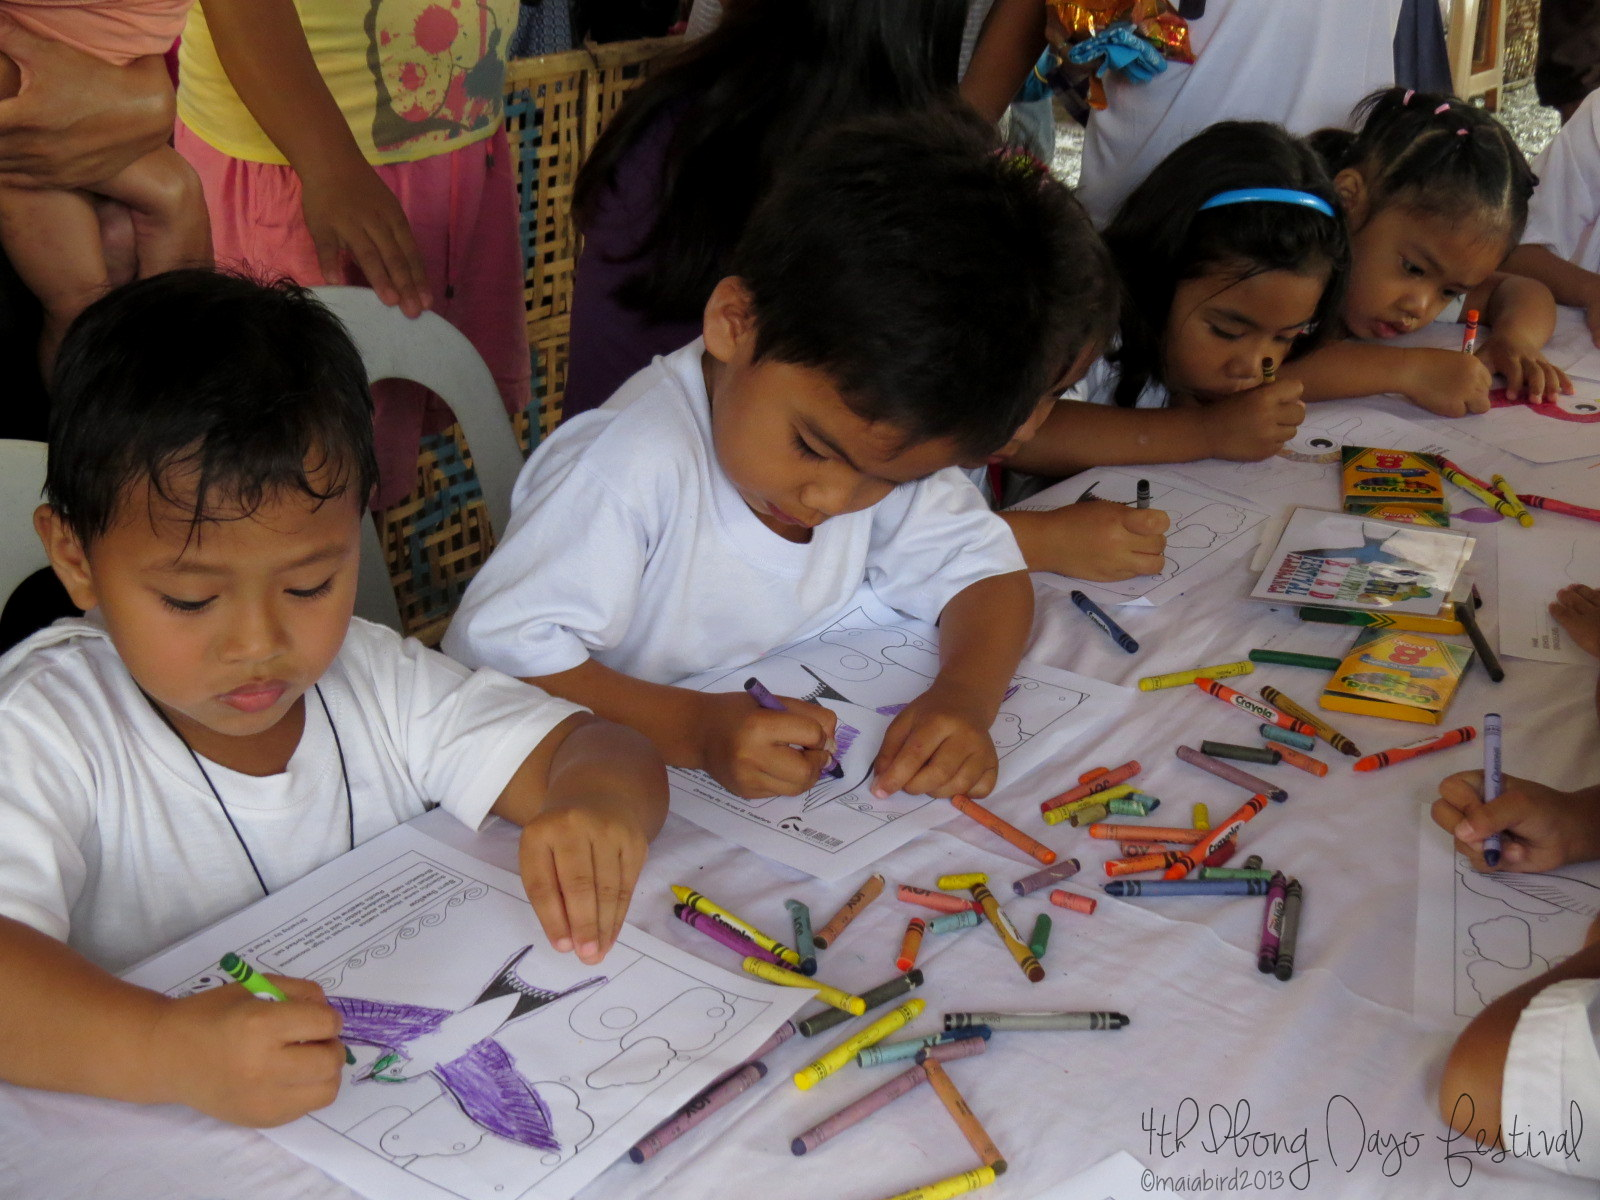 Lots of young artists flocked to the coloring booth. Photo by Maia Tanedo